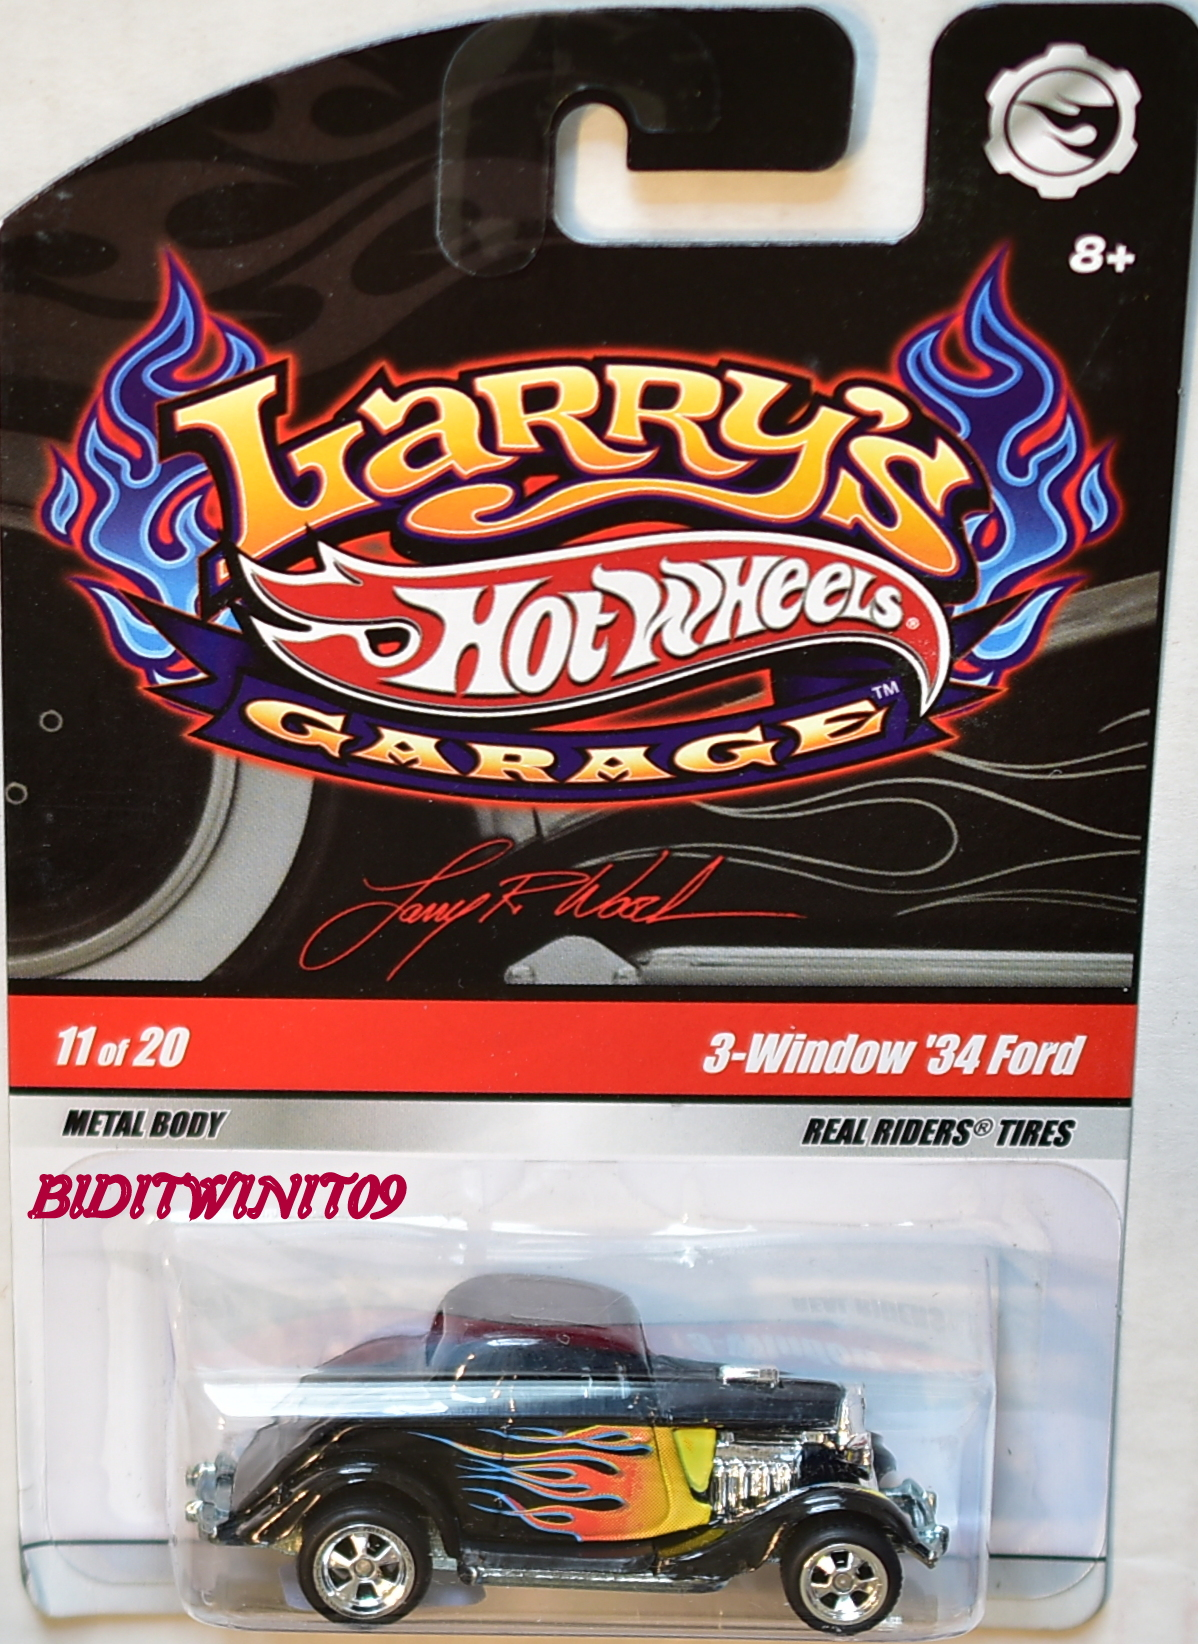 HOT WHEELS LARRY'S GARAGE #11/20 3-WINDOW '34 FORD